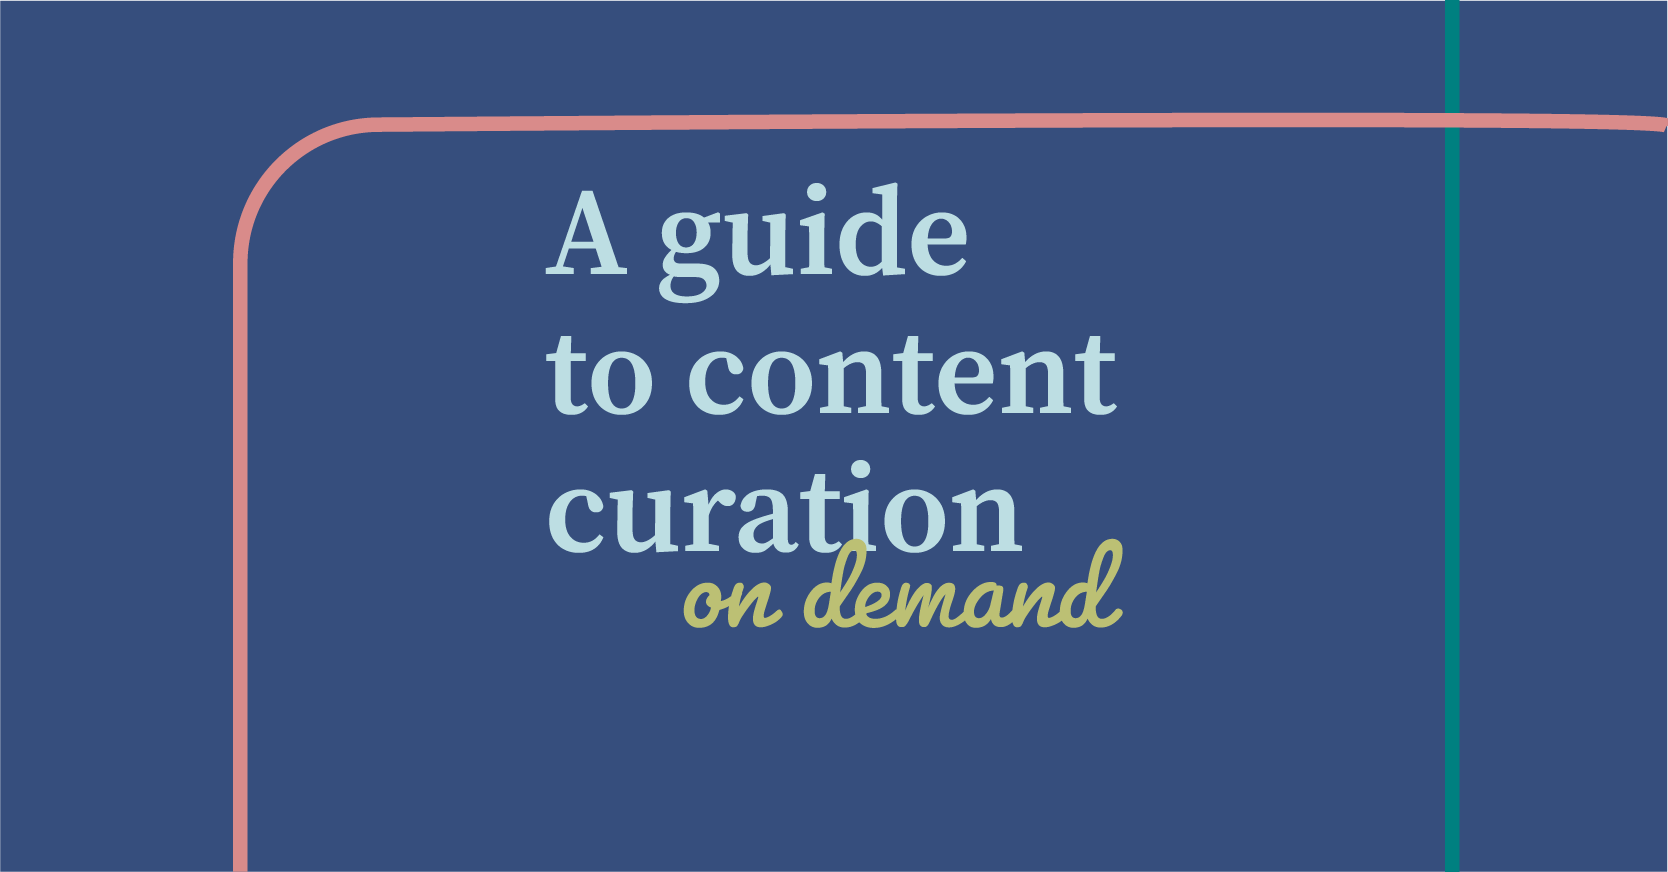 Content curation on demand: what it is for and how to make the most of it